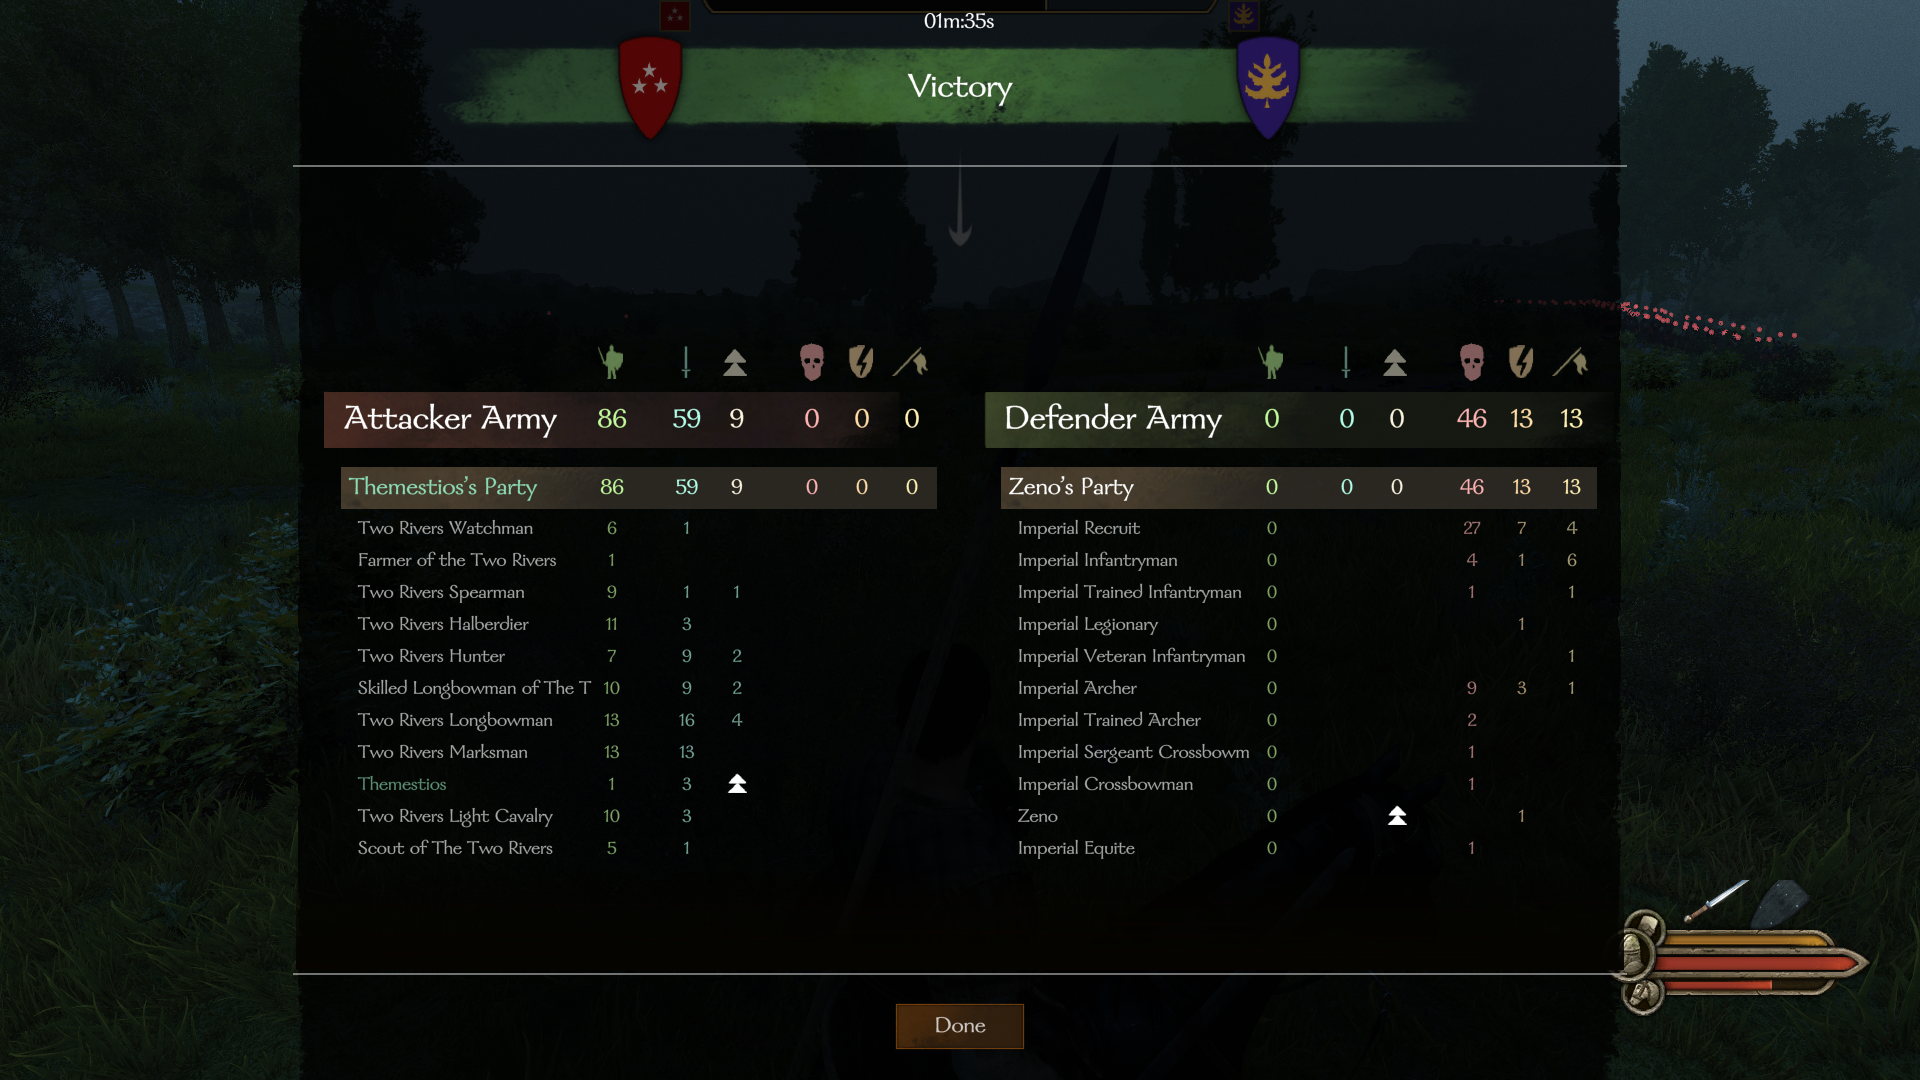 Victory for the Two Rivers!